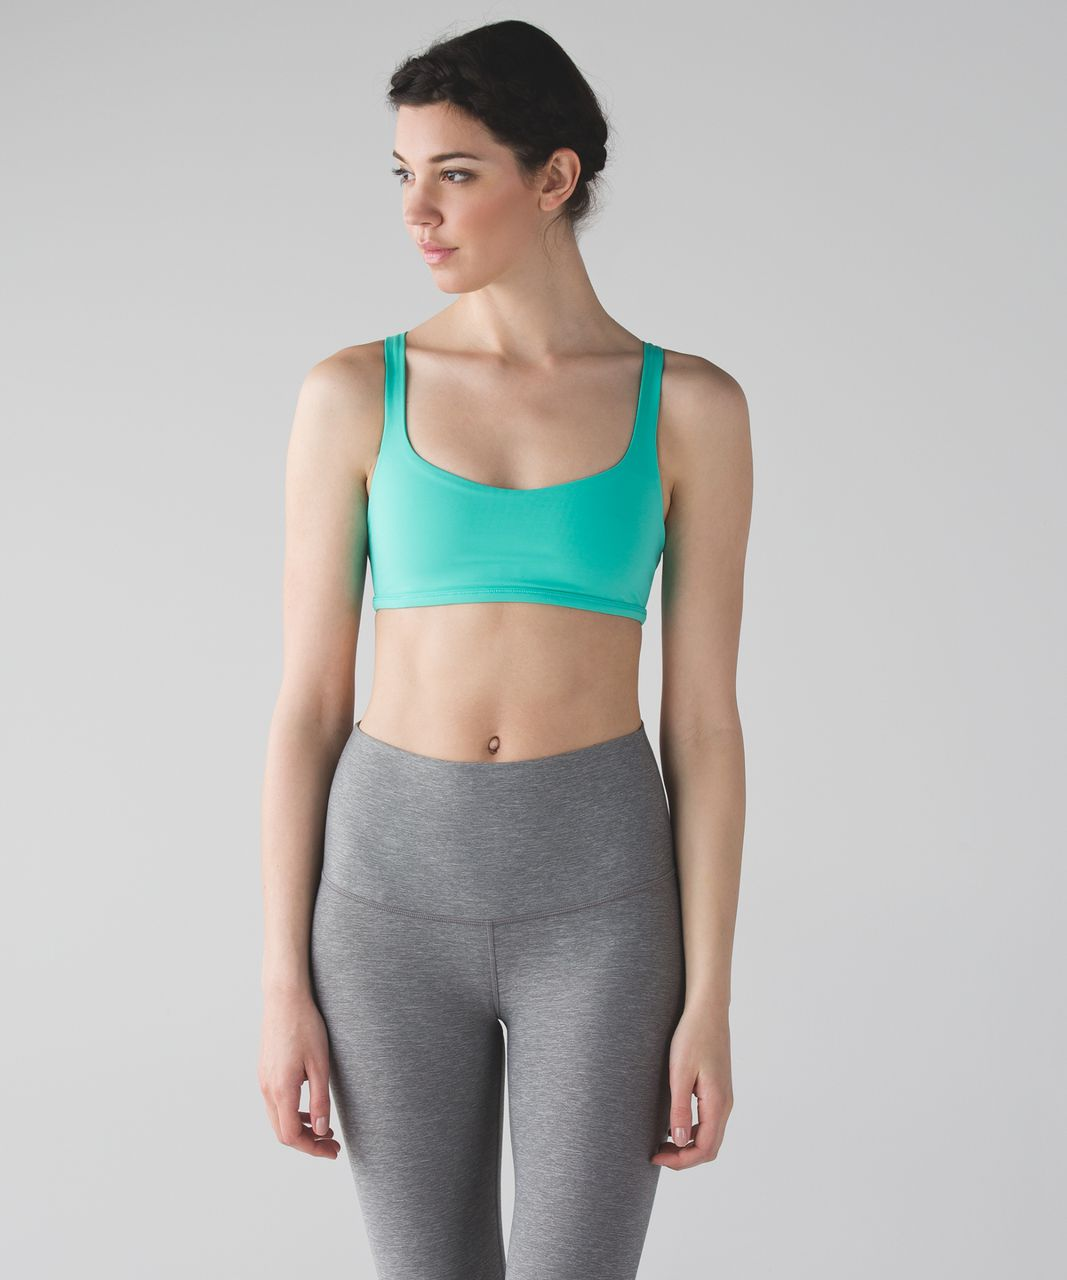 Lululemon Free To Be Bra (Wild) - Bali Breeze / Pretty Lace Bali Breeze Alberta Lake